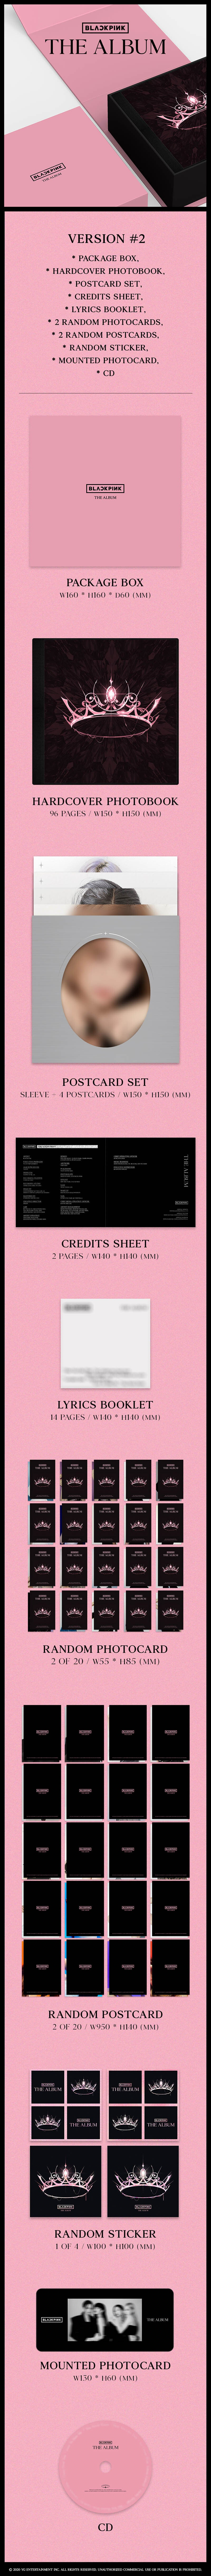 Blackpink 1st Full Album The Album SOKOLLAB UK